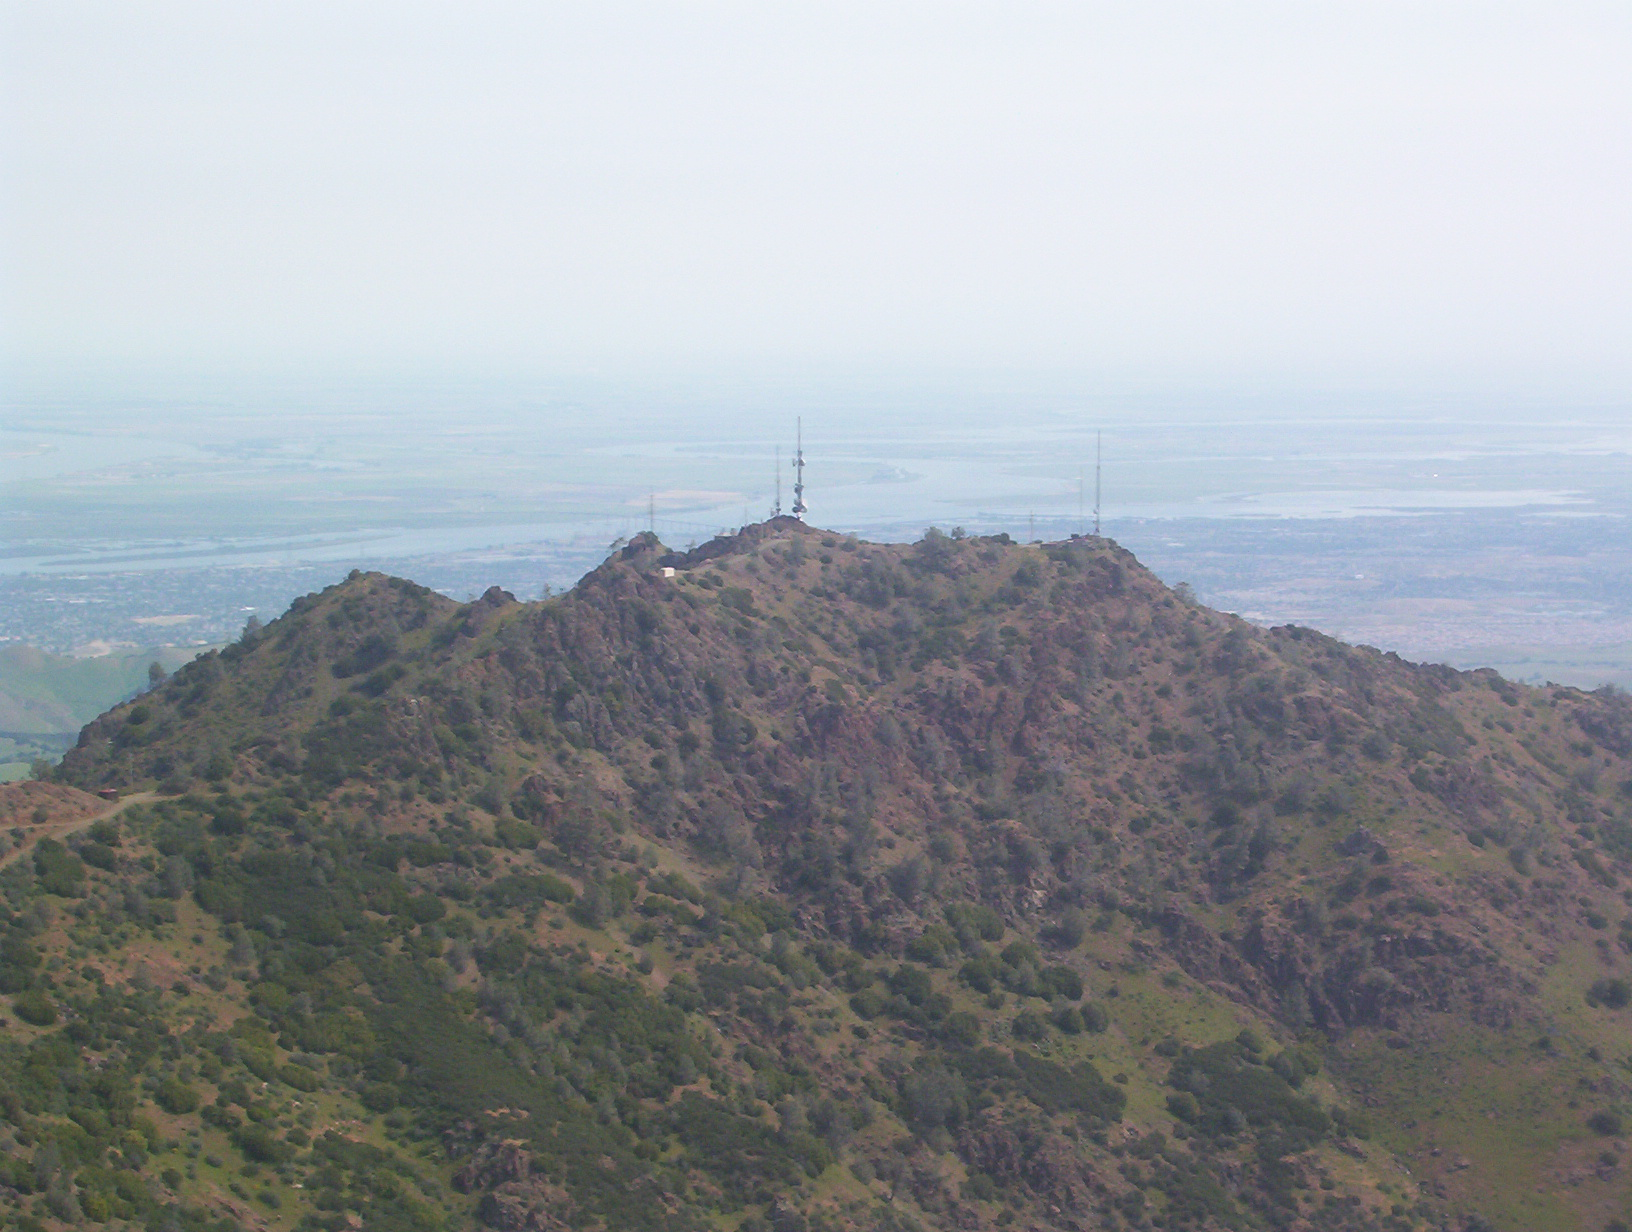 The Sacramento-San Joaquin Delta viewed from Mount Diablo, near where Fages and his crew are believed to have first caught sight of the Sacramento River